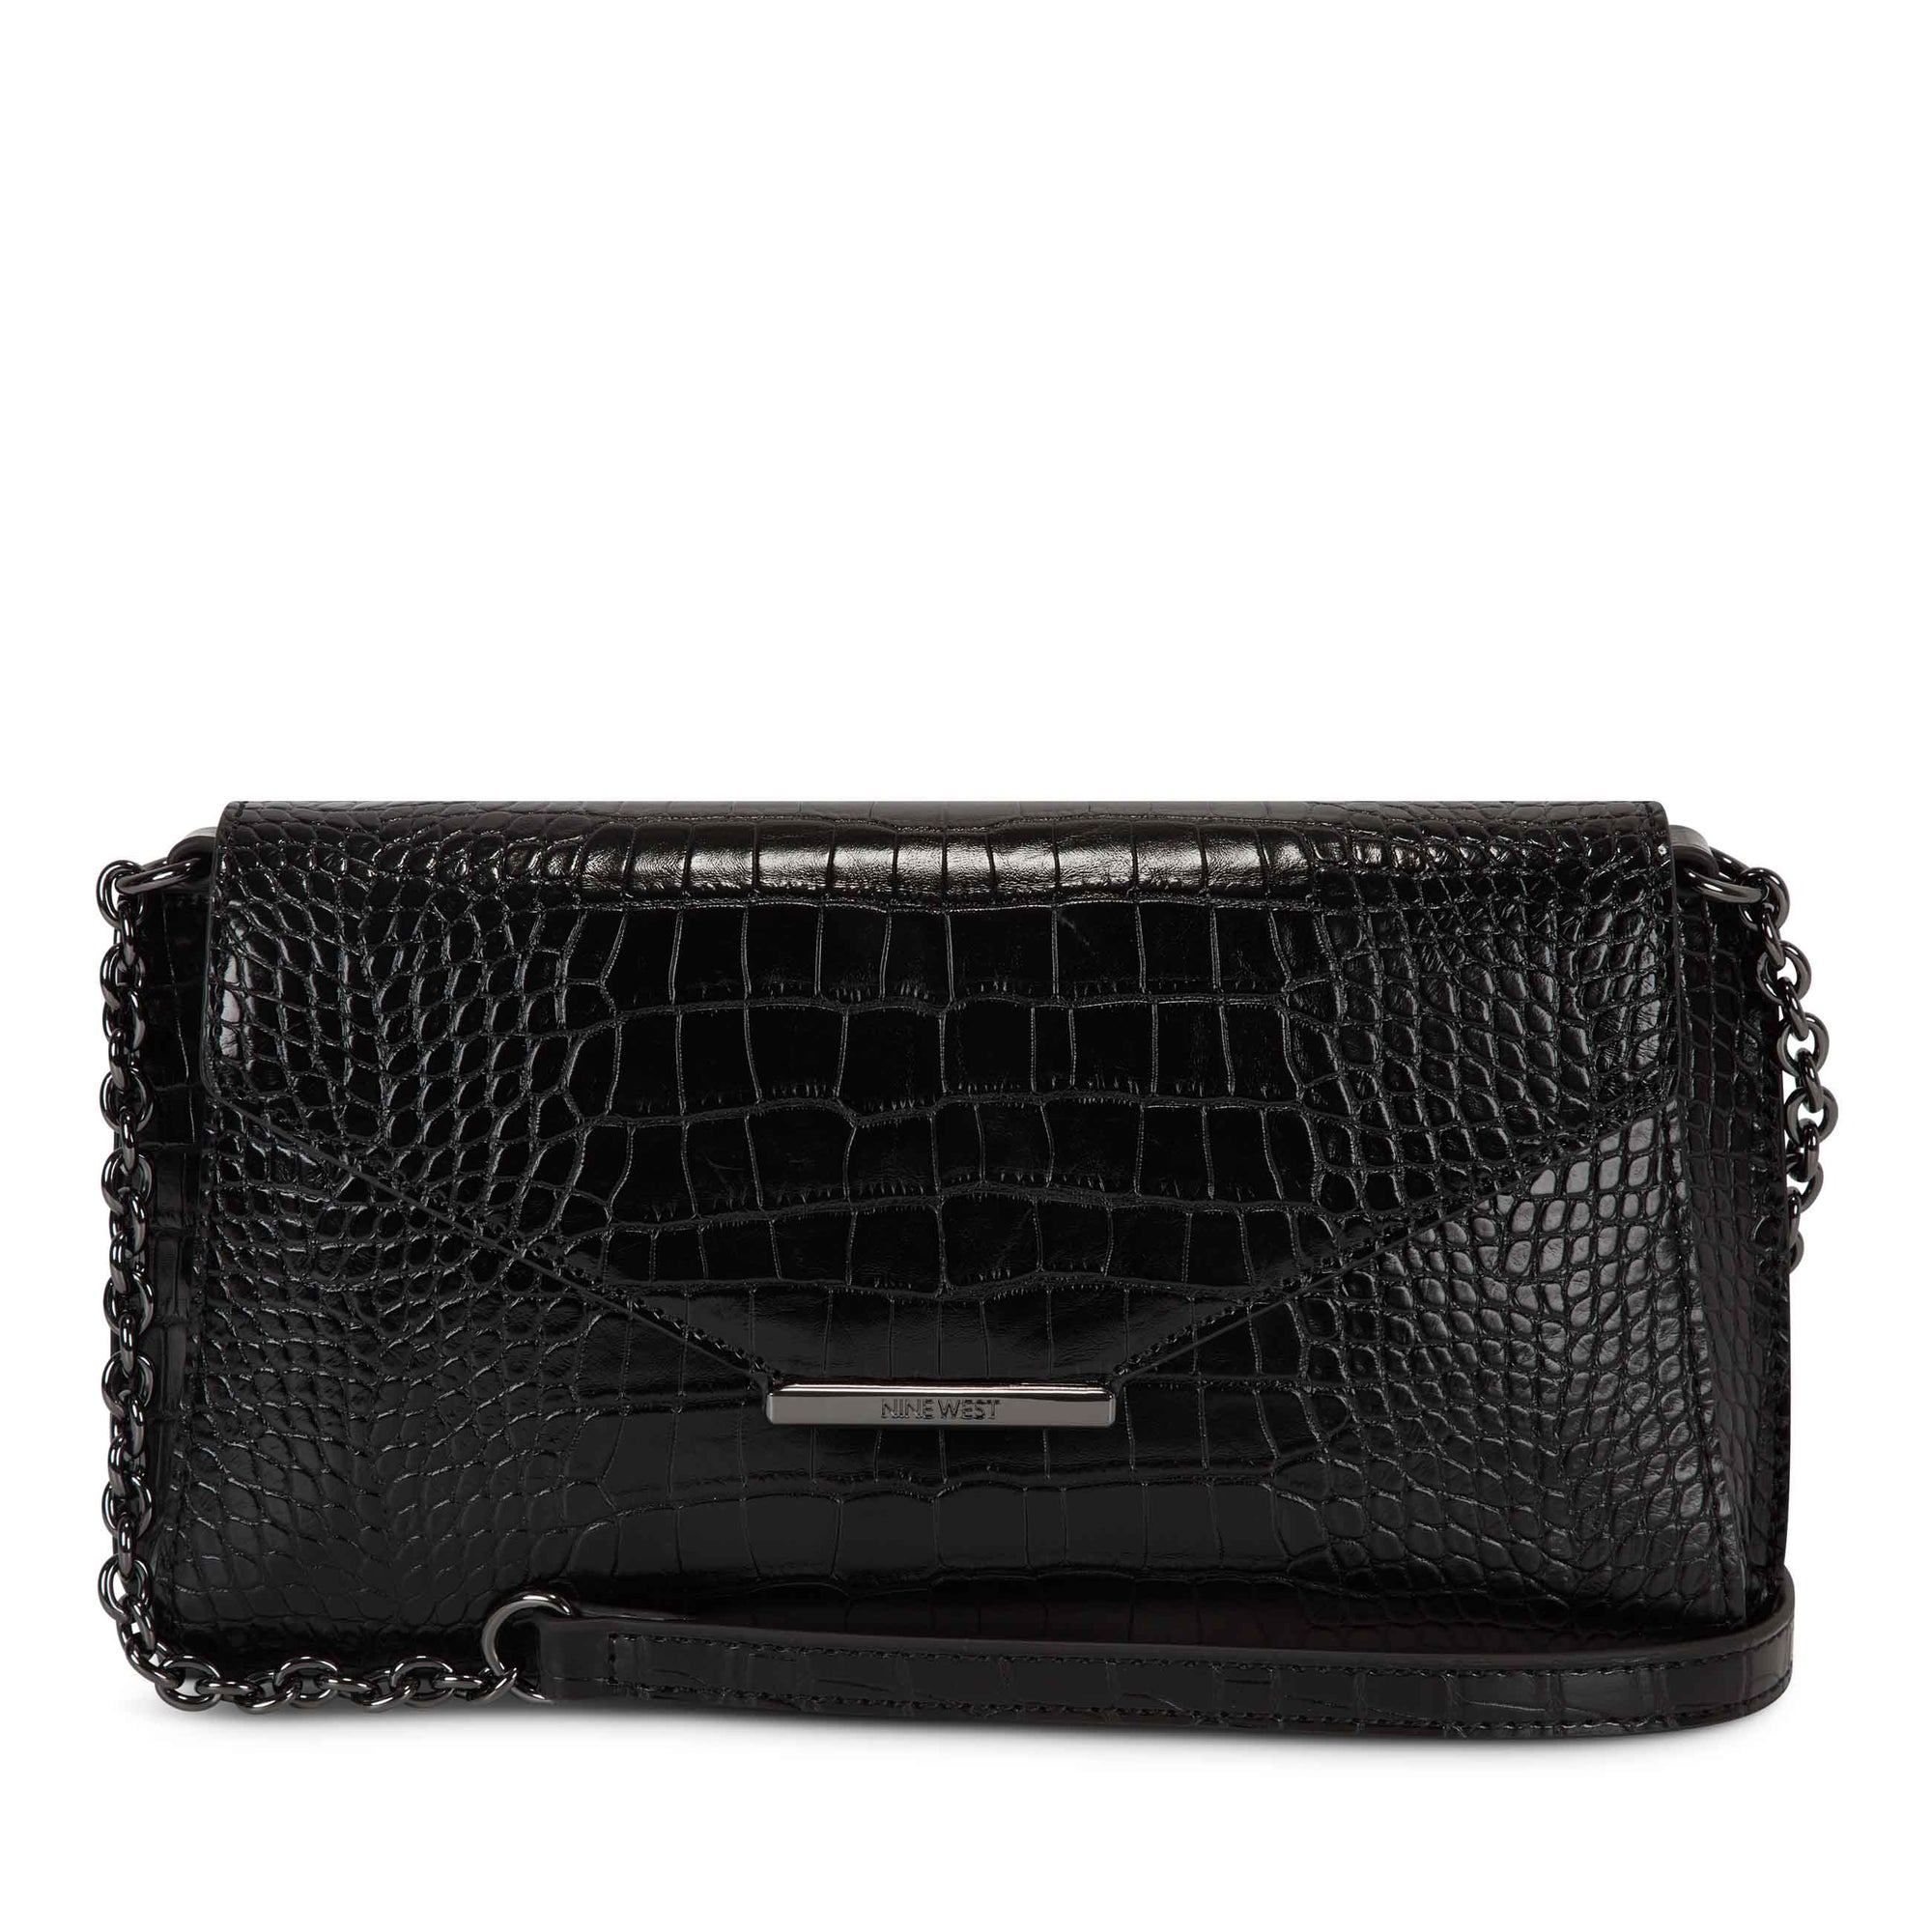 aspyn-flap-clutch-in-black